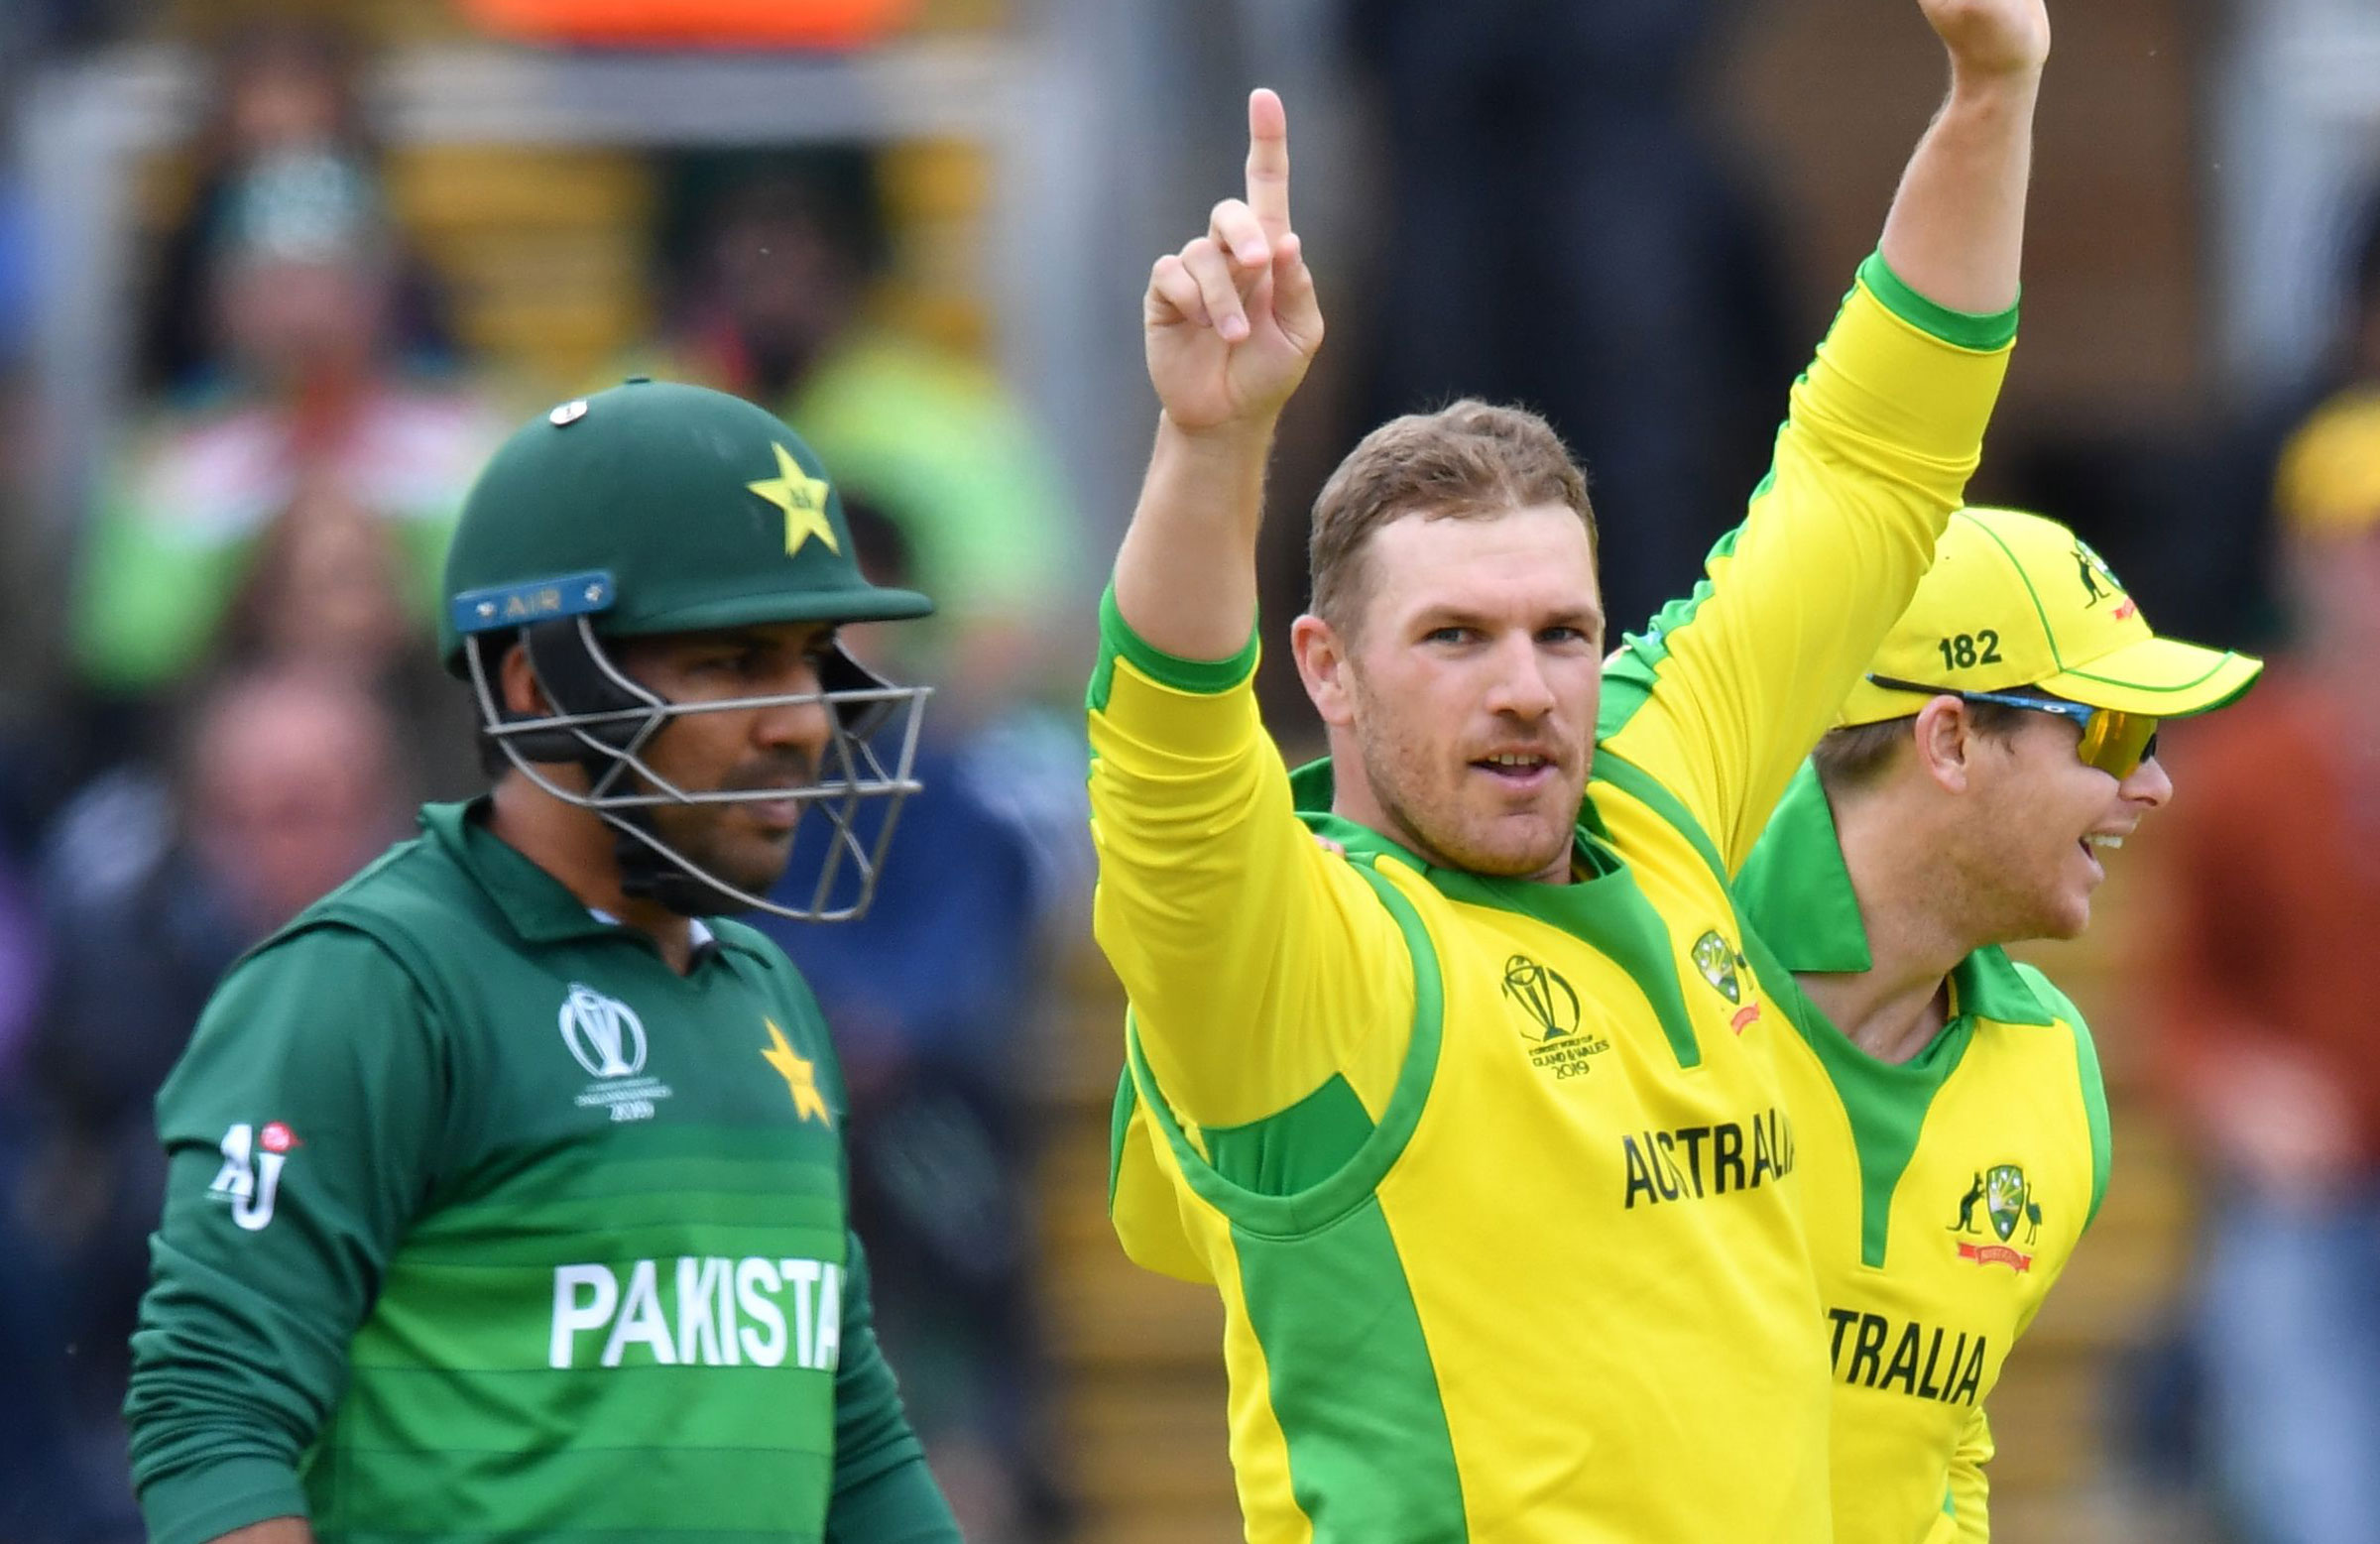 Aaron Finch picked up the wicket of Mohammad Hafeez // Getty